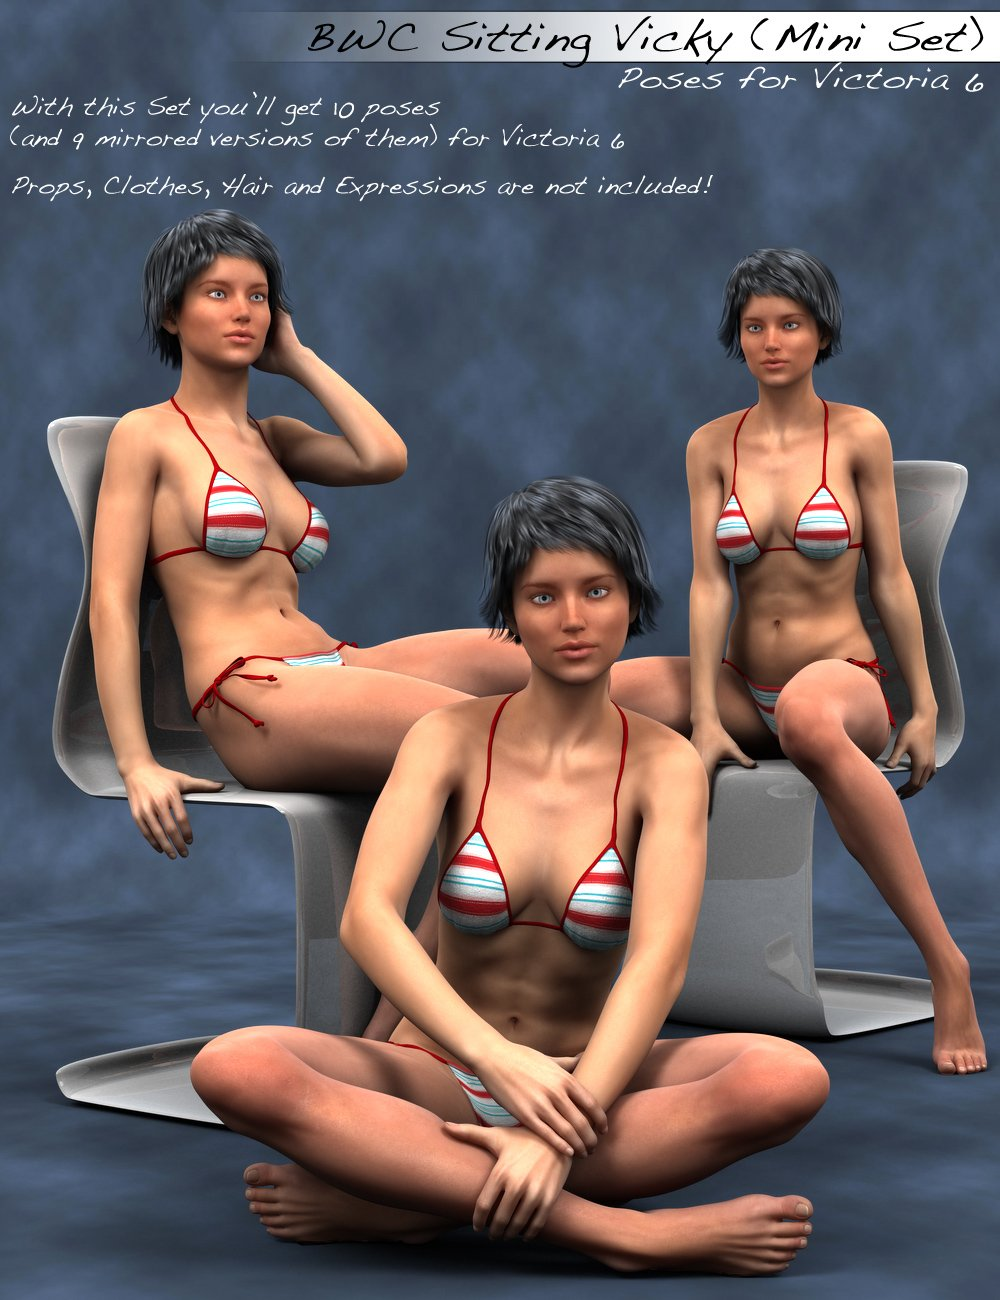 BWC Sitting Vicky for Victoria 6 by: Sedor, 3D Models by Daz 3D